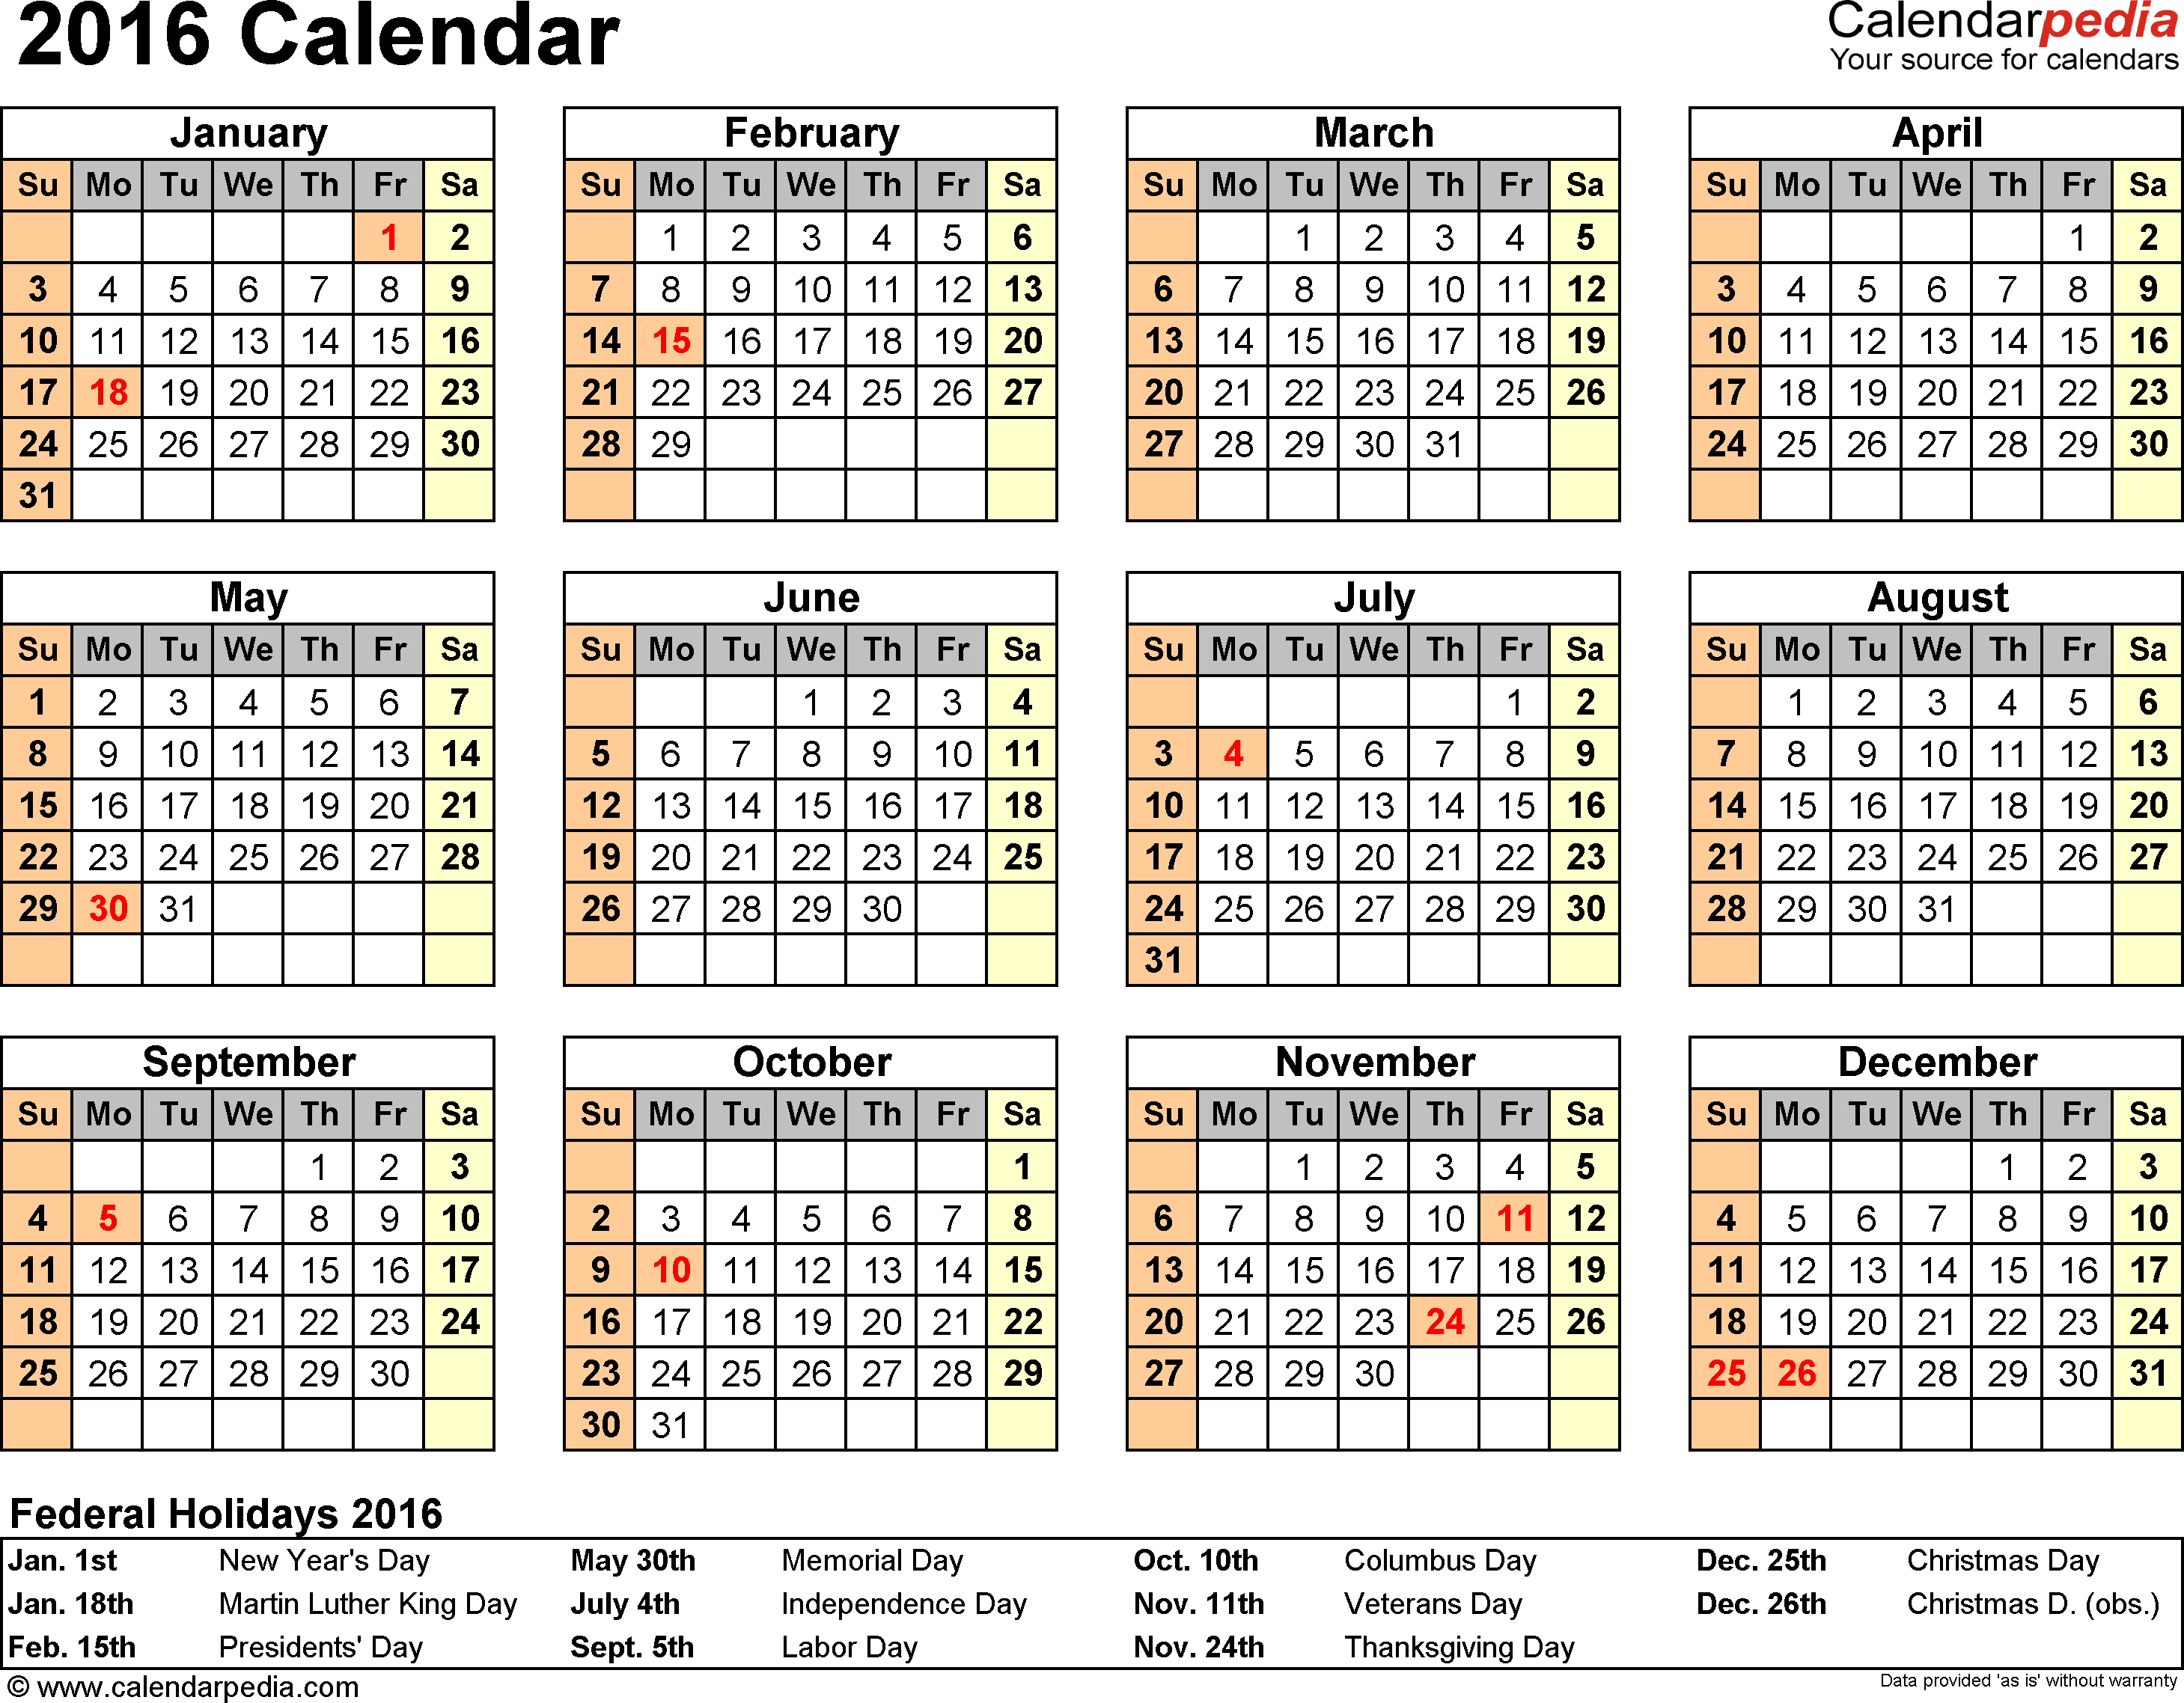 Template 8: 2016 Calendar for PDF, year at a glance, 1 page, landscape orientation